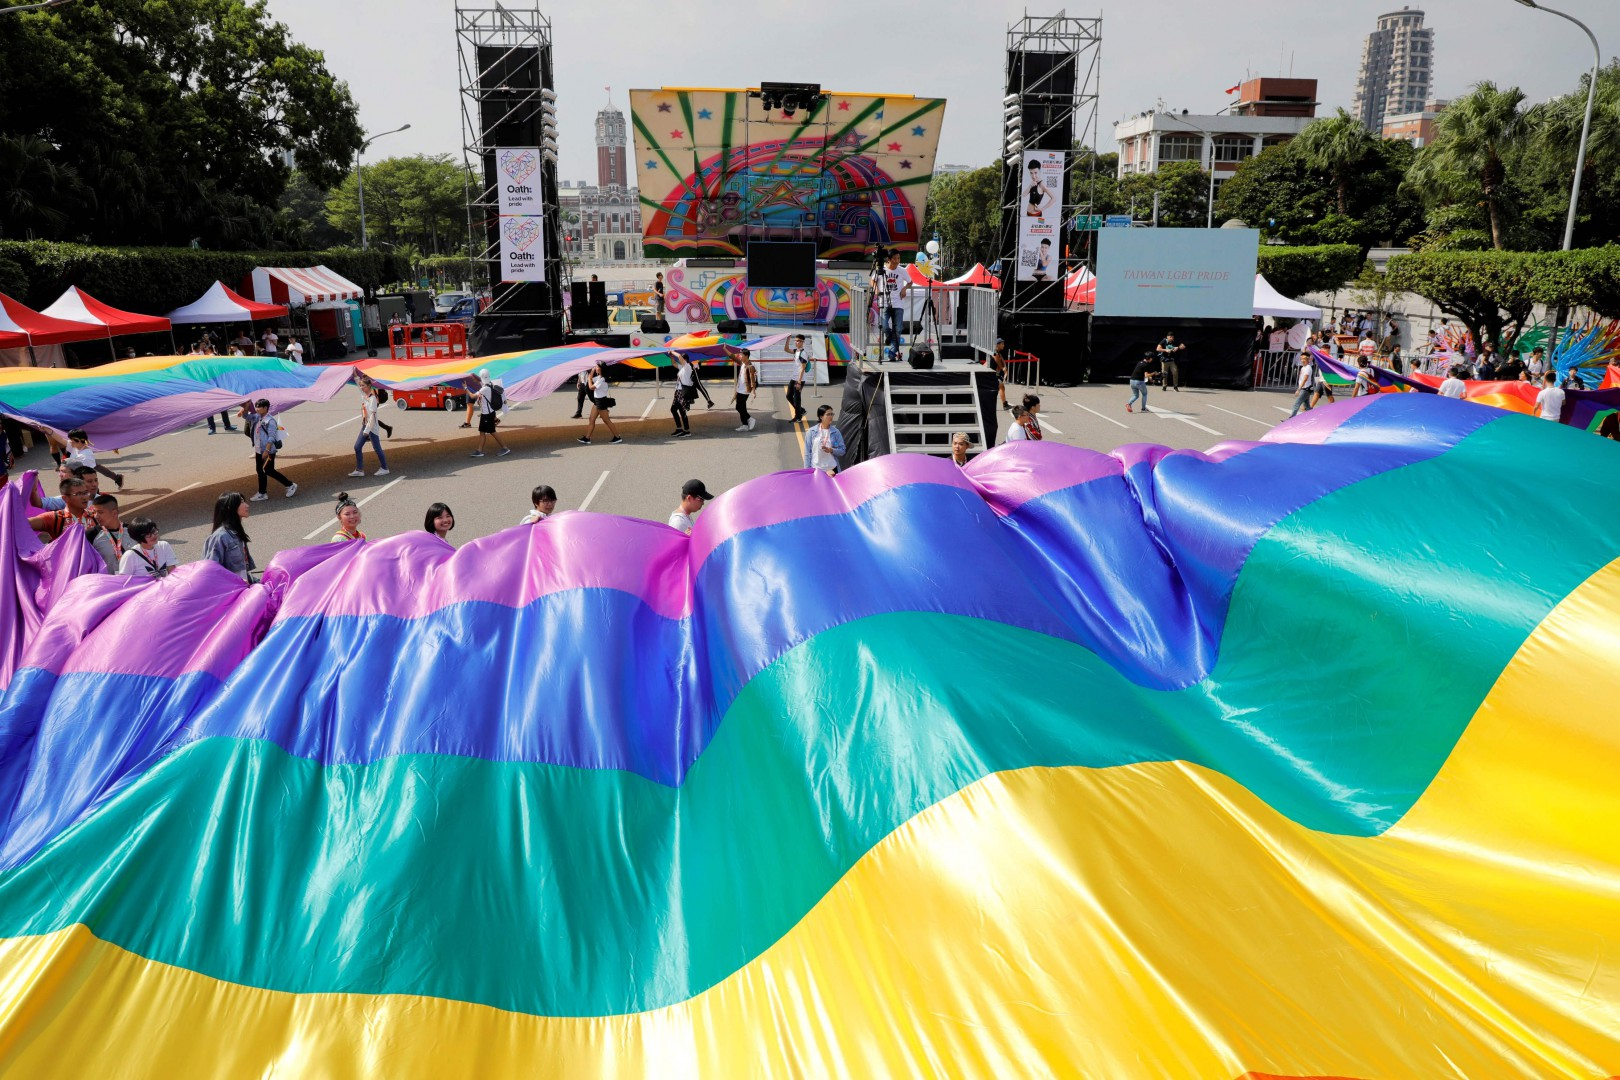 Participants rehearse with a large rainbow banner before the start of a gay pride parade in Taipei on October 27, 2018. - Thousands were gathered at Taipei's Gay Pride parade on October 27 -- the biggest in Asia -- ahead of a landmark vote next month on LGBT rights on the island. (Photo by Daniel Shih / AFP)